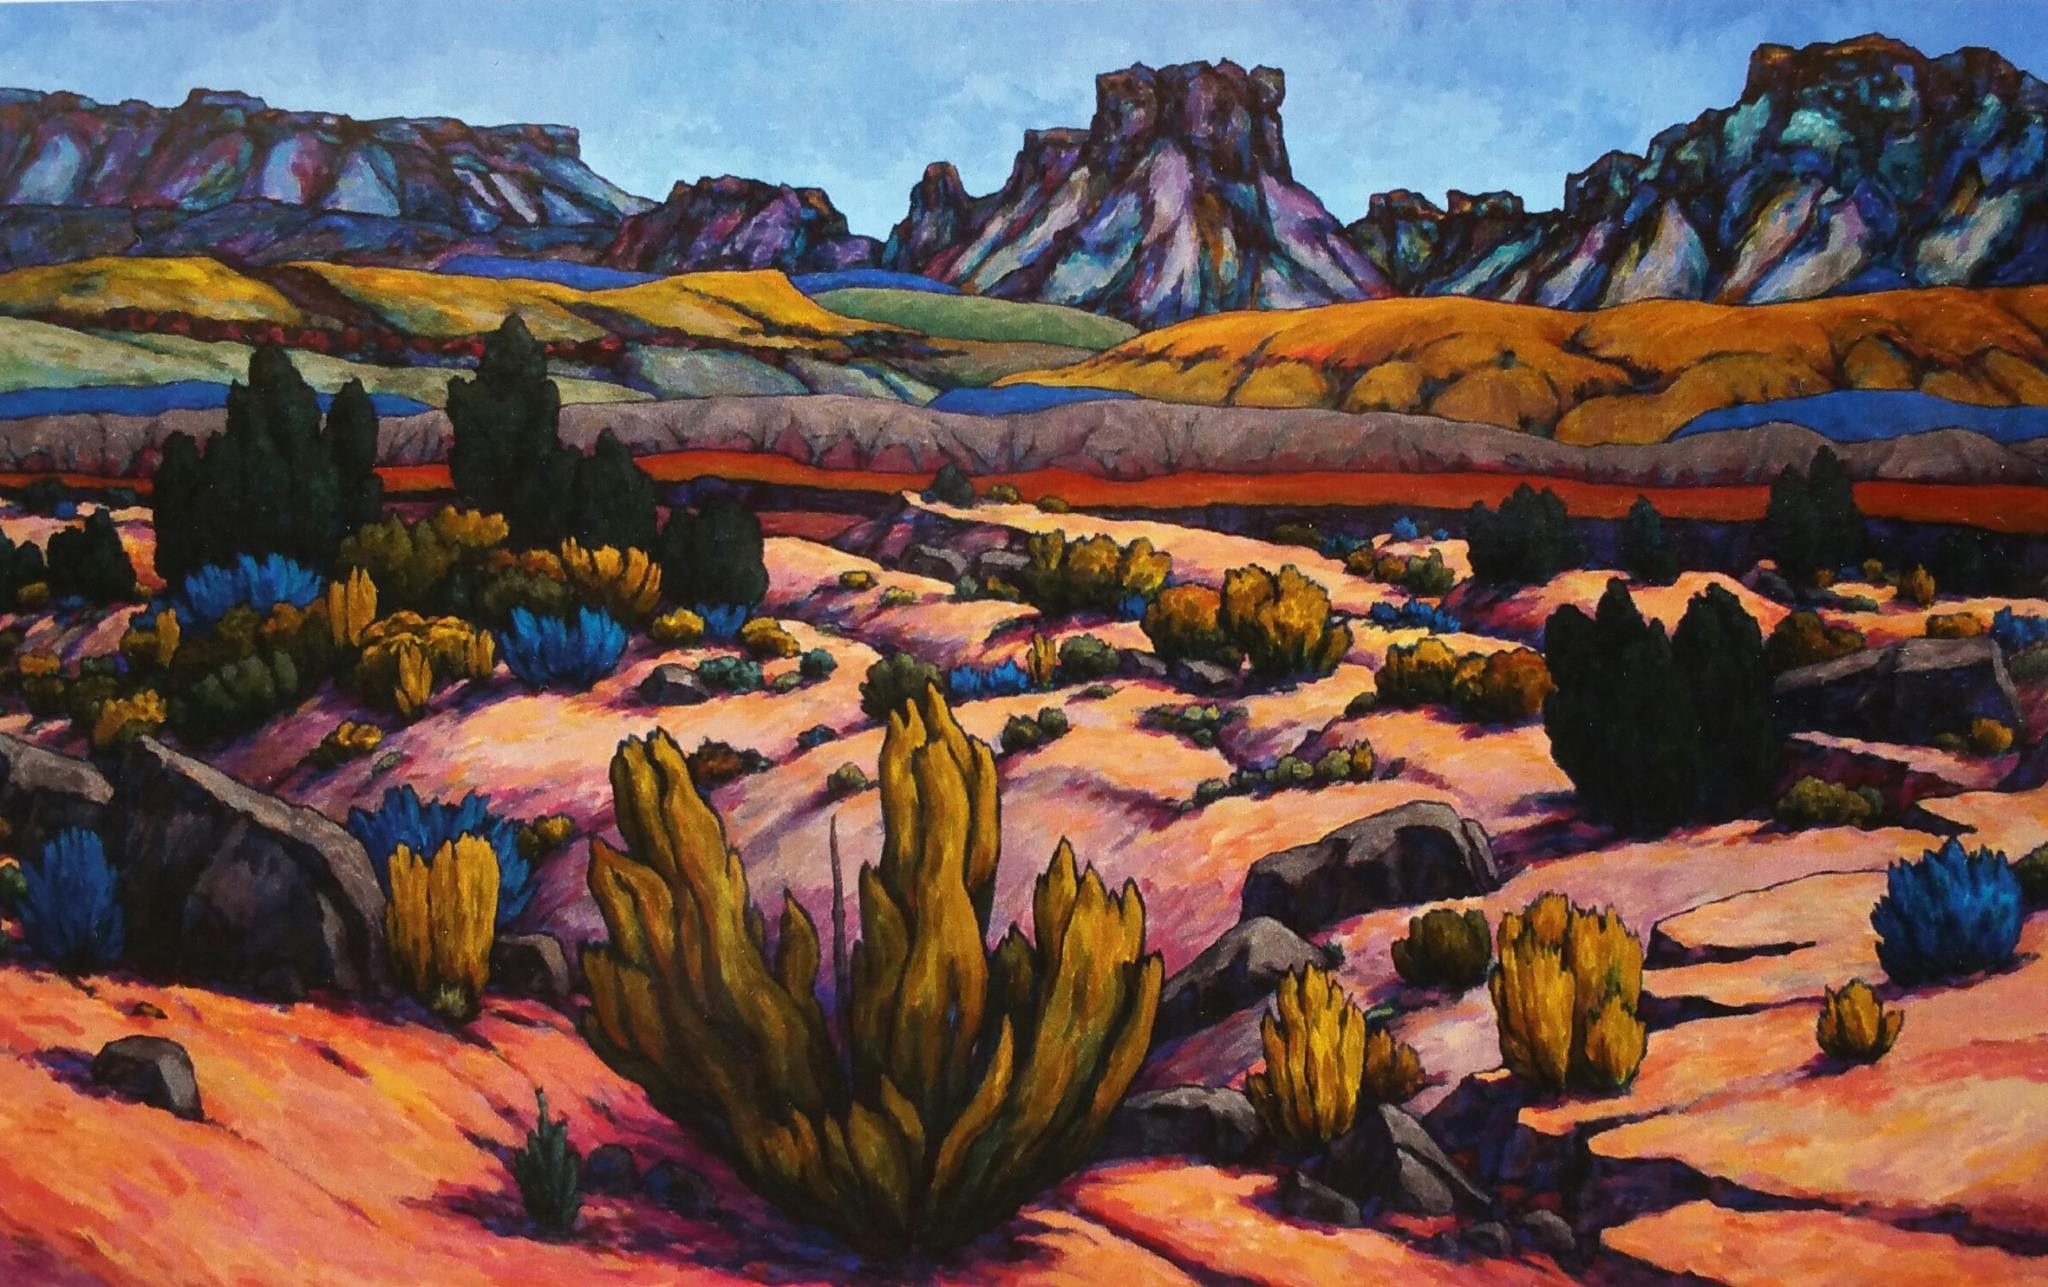 This photo shows the work of artist Royden Card who will be one of the featured artists during the Arts to Zion 2017 studio tour. The tour invites the public to see artists at work in their home studios, galleries, museums and in plein air and will be held Jan. 12-15, 2017, in Southern Utah | Photo courtesy of Arts to Zion, St. George News